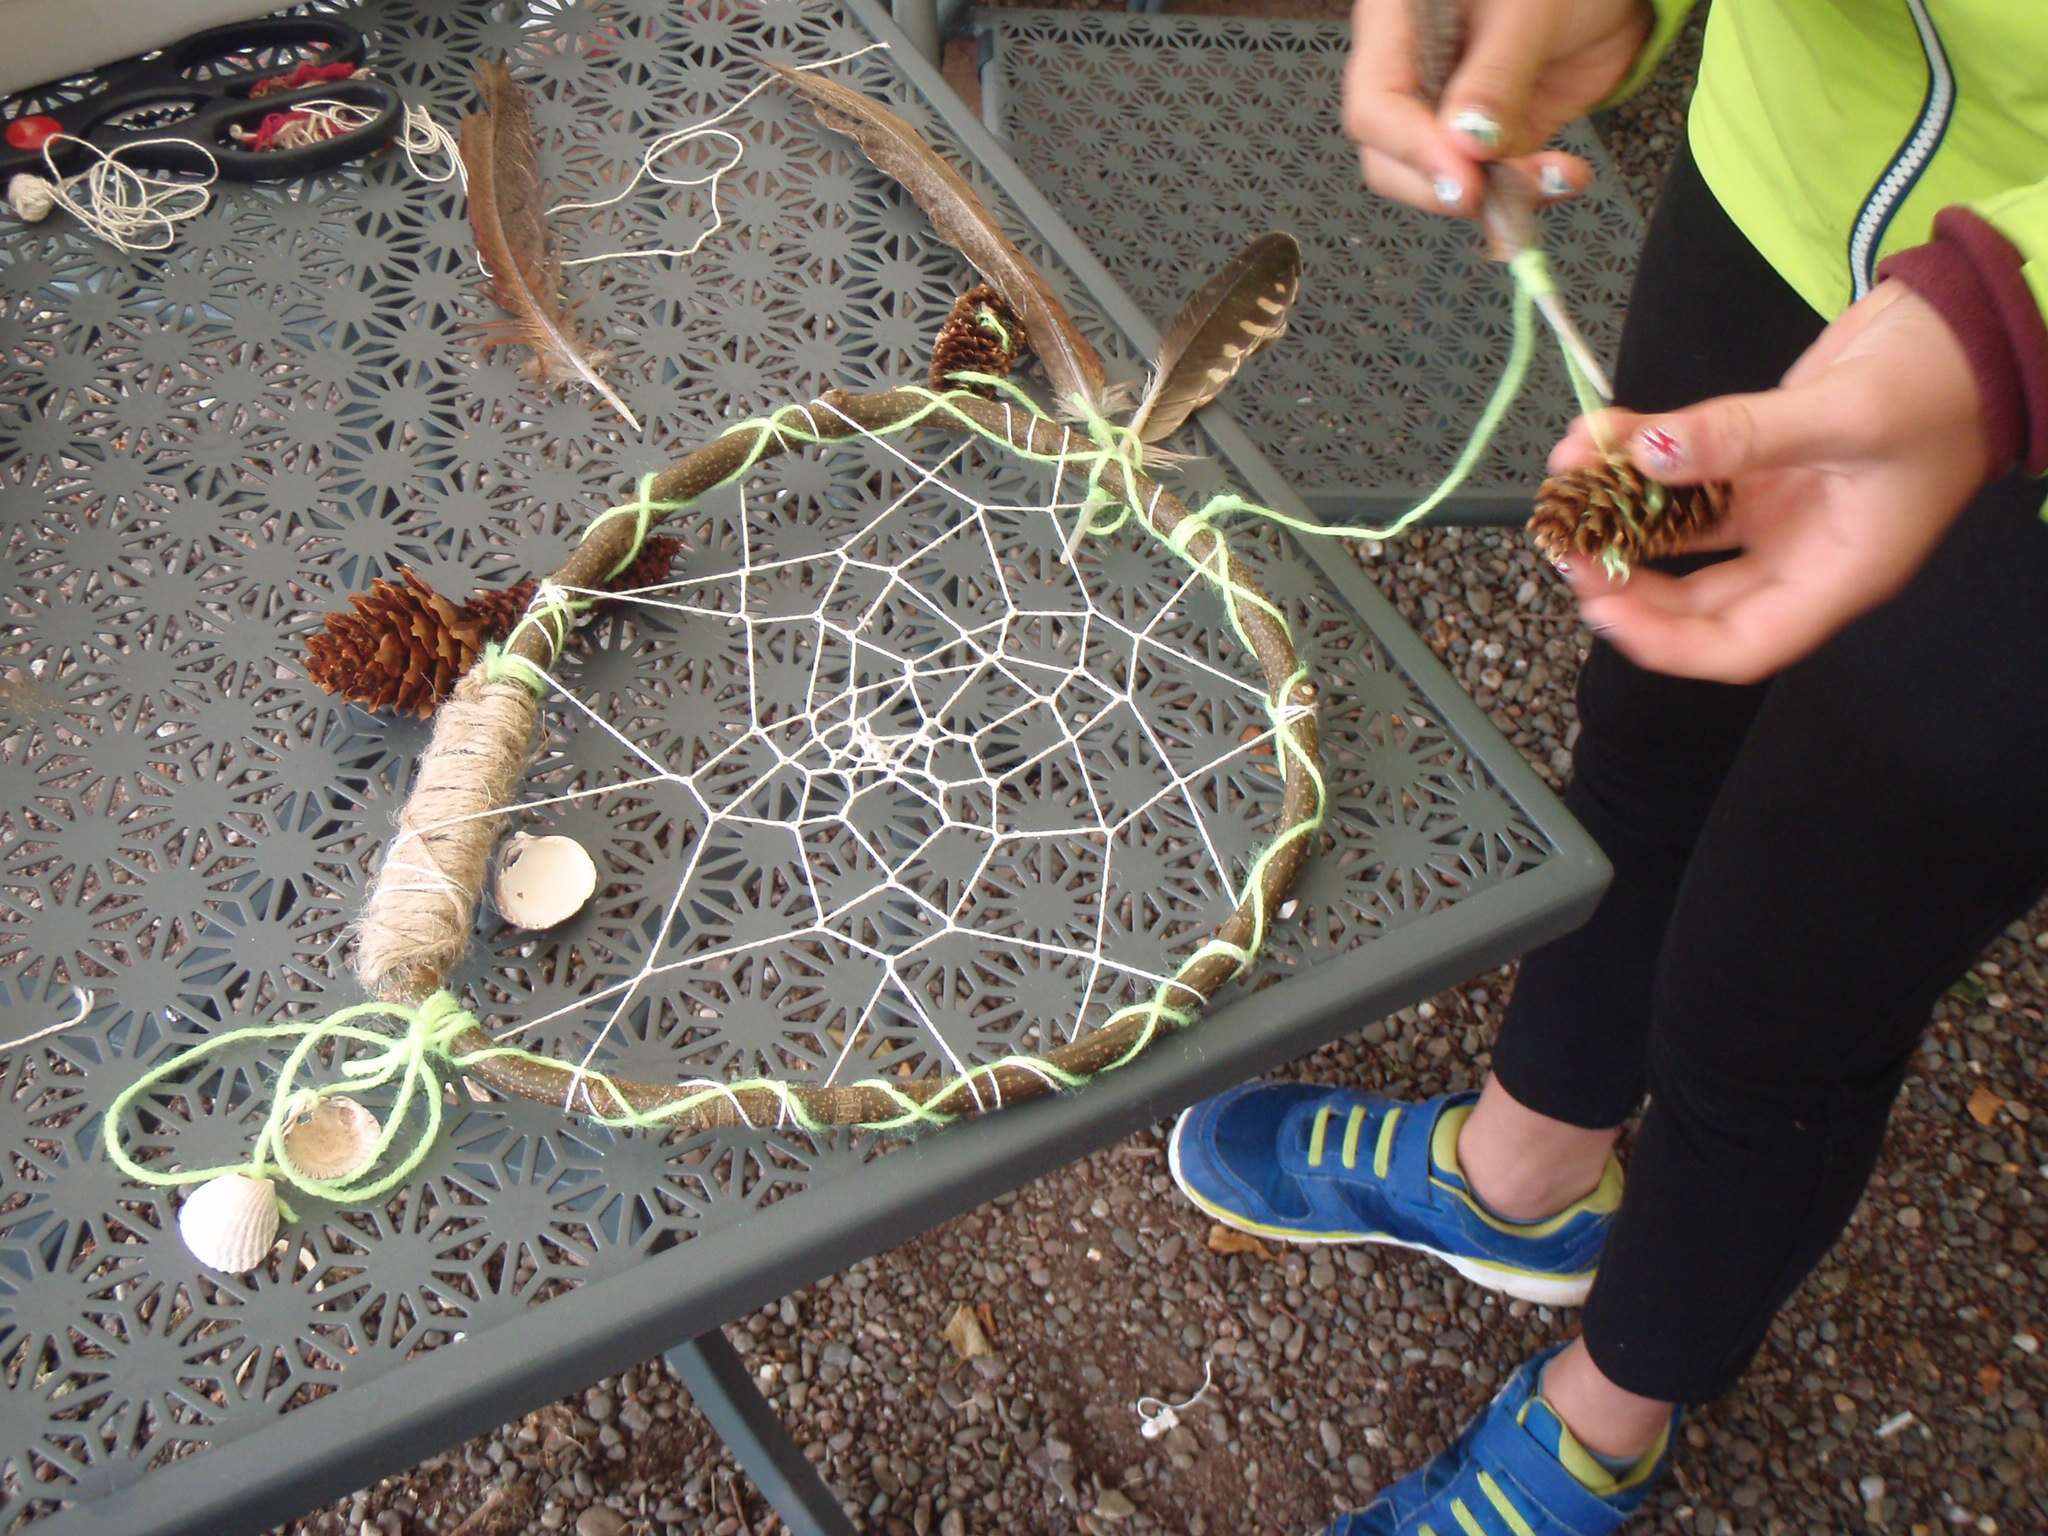 Sweet dreams with this dreamcatcher